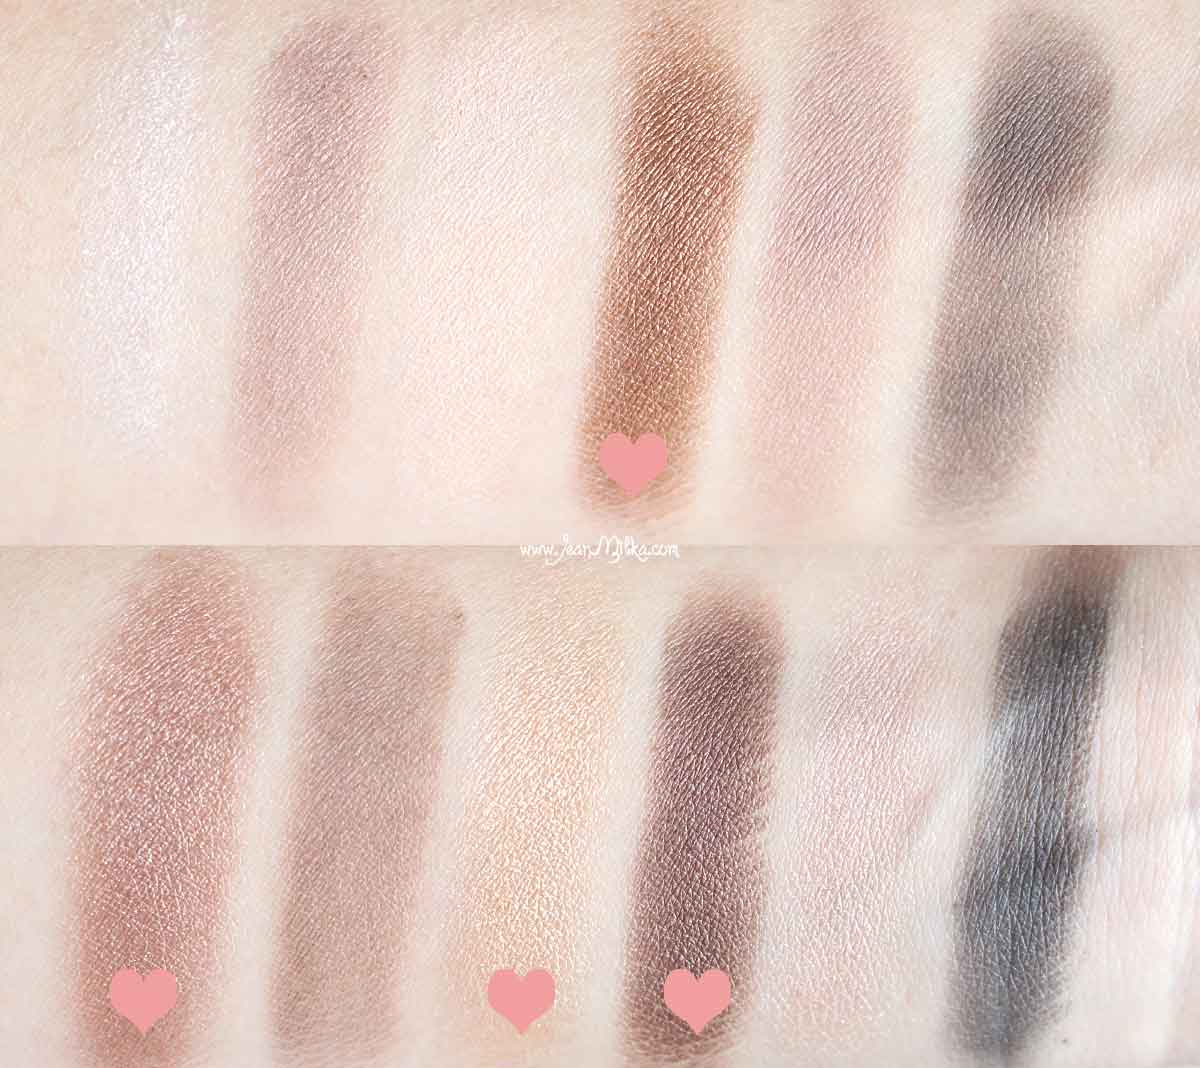 maybelline, the nudes, palette, eyeshadow, review, swatch, drugstore, maybelline the nudes, eyeshadow palette, beauty, makeup, swatch